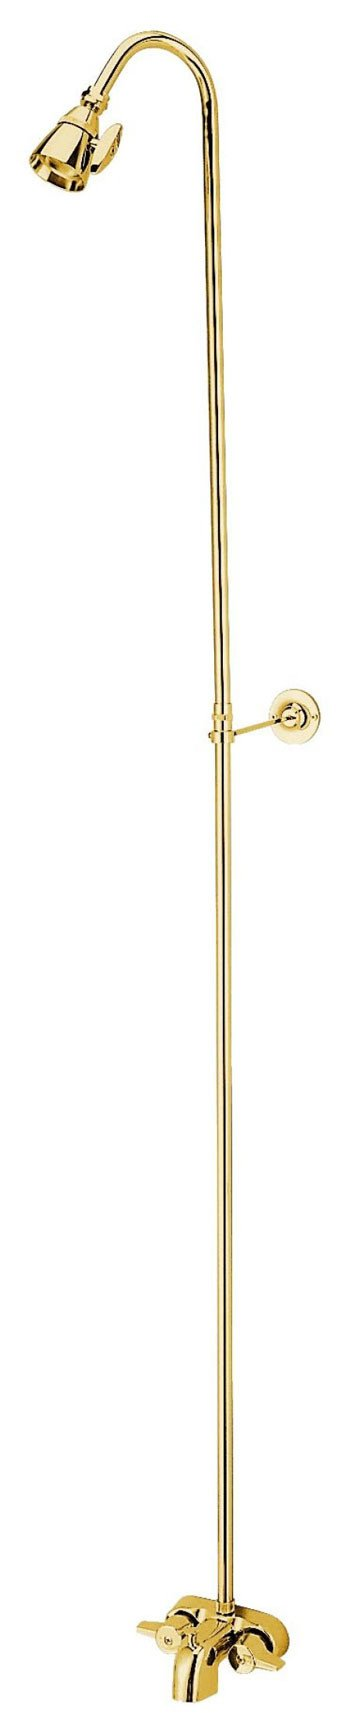 Kingston Brass Polished Brass Converto Shower CC3122